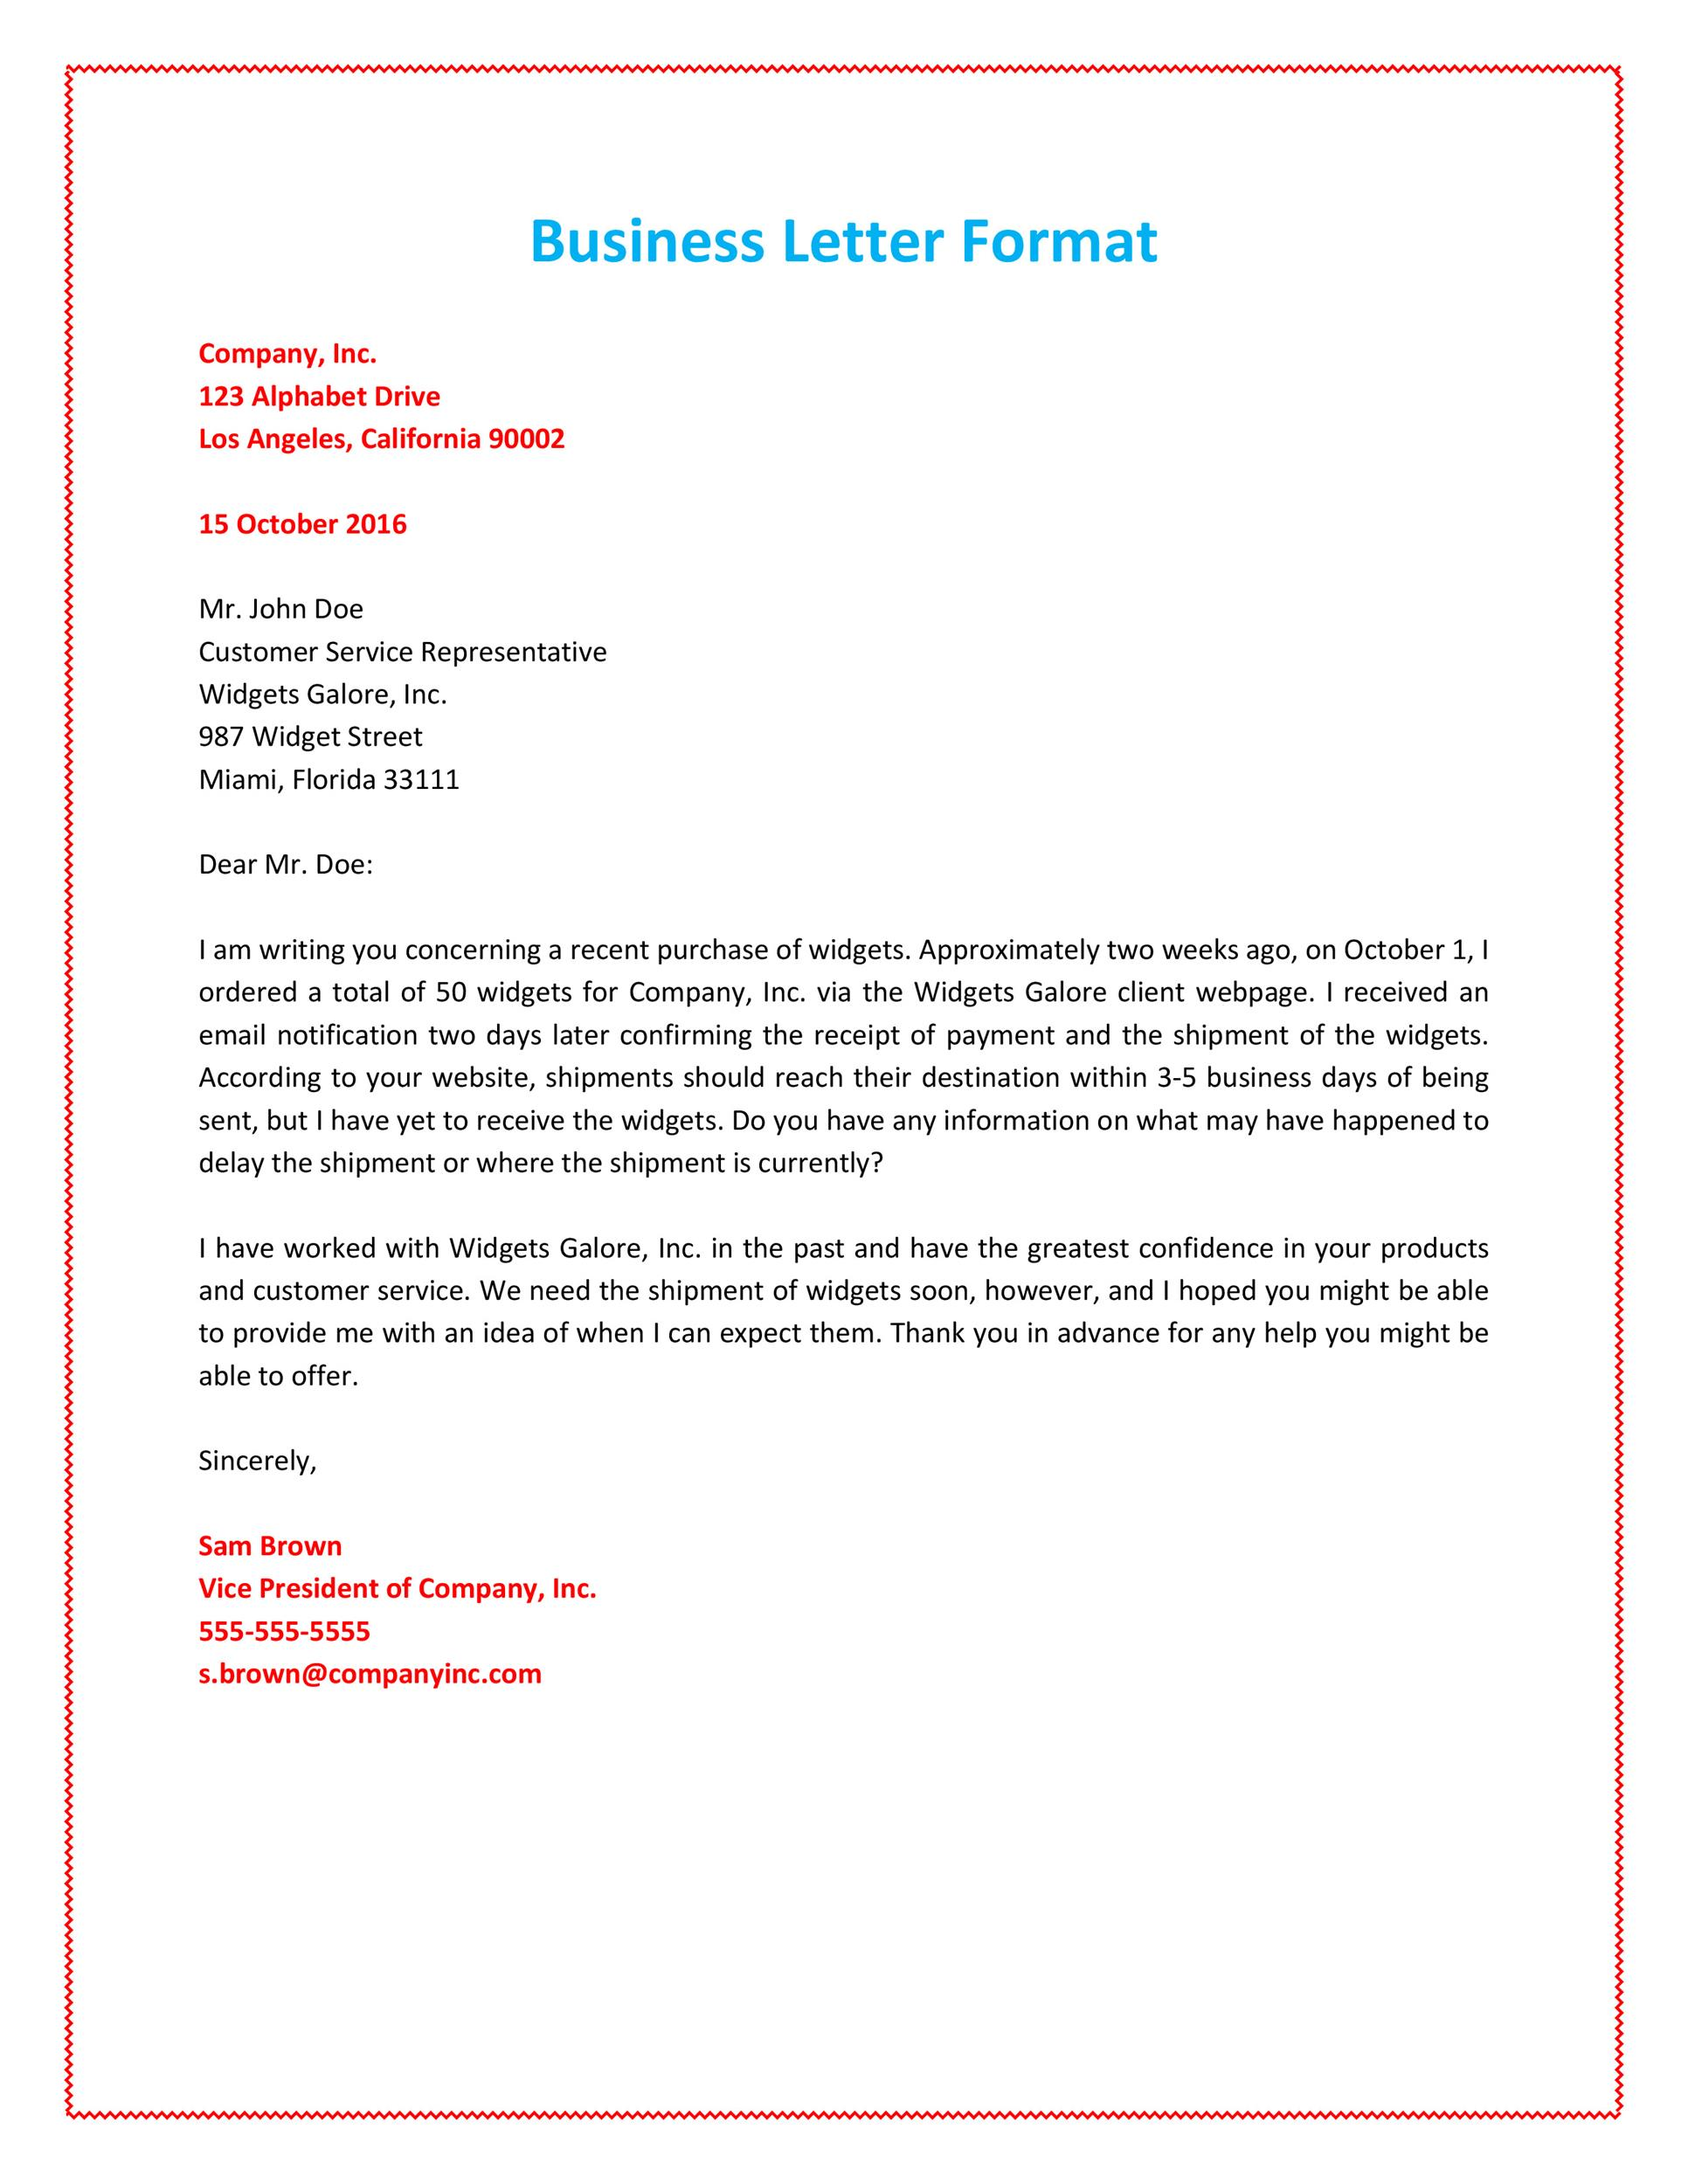 Formal Business Thank You Letter from templatelab.com